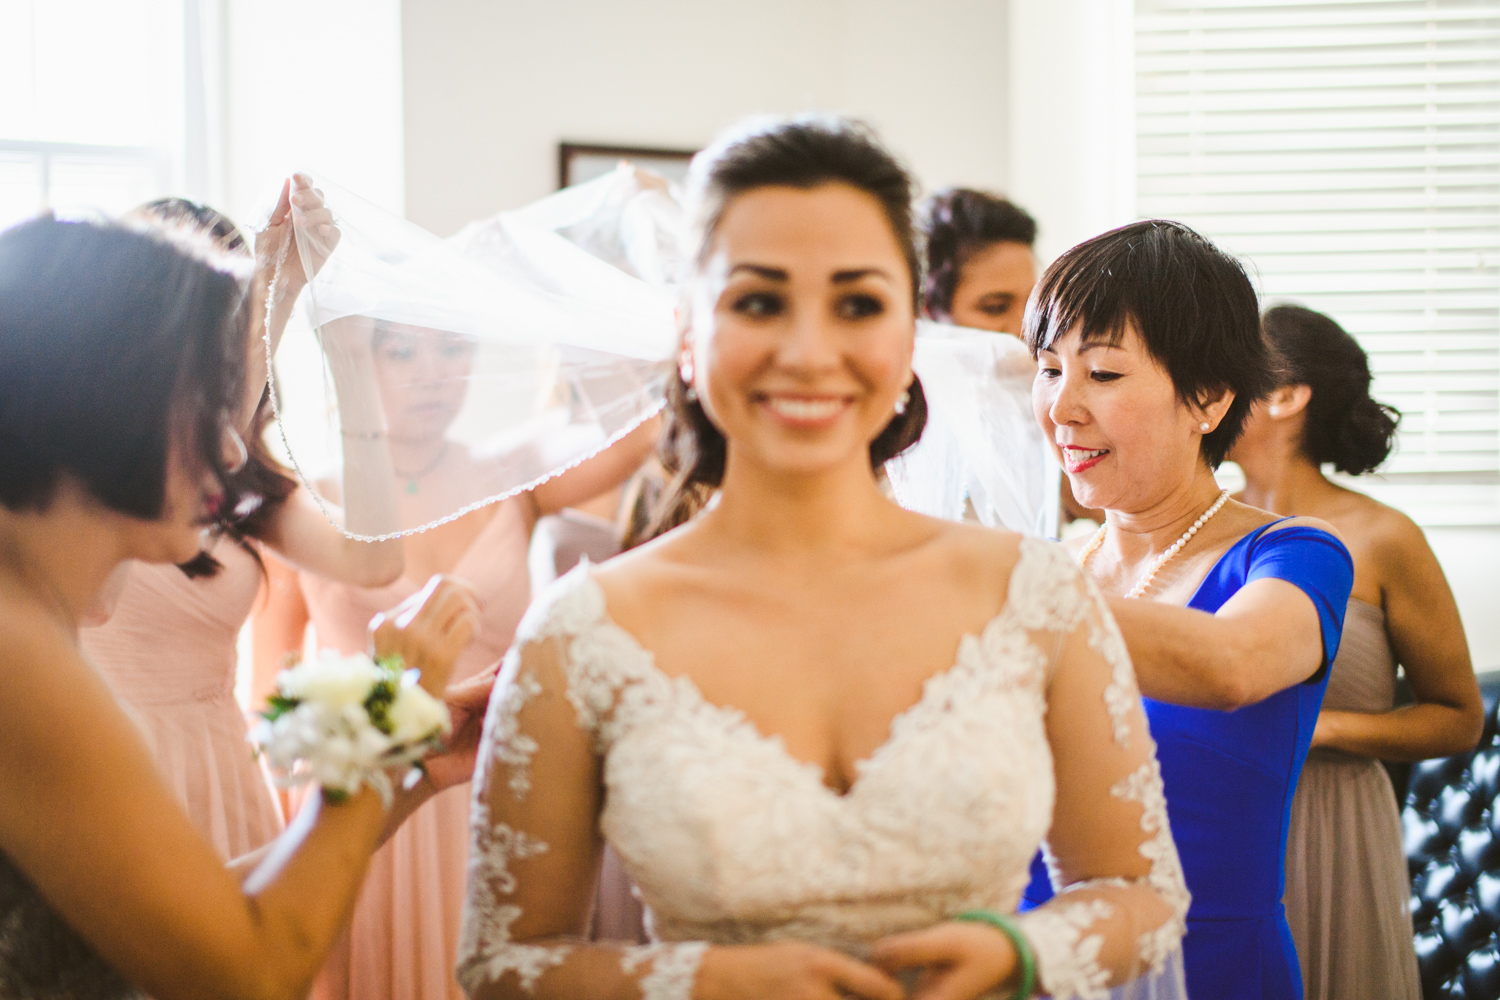 003 bride's mother smiles as she helps her daughter into dress.jpg